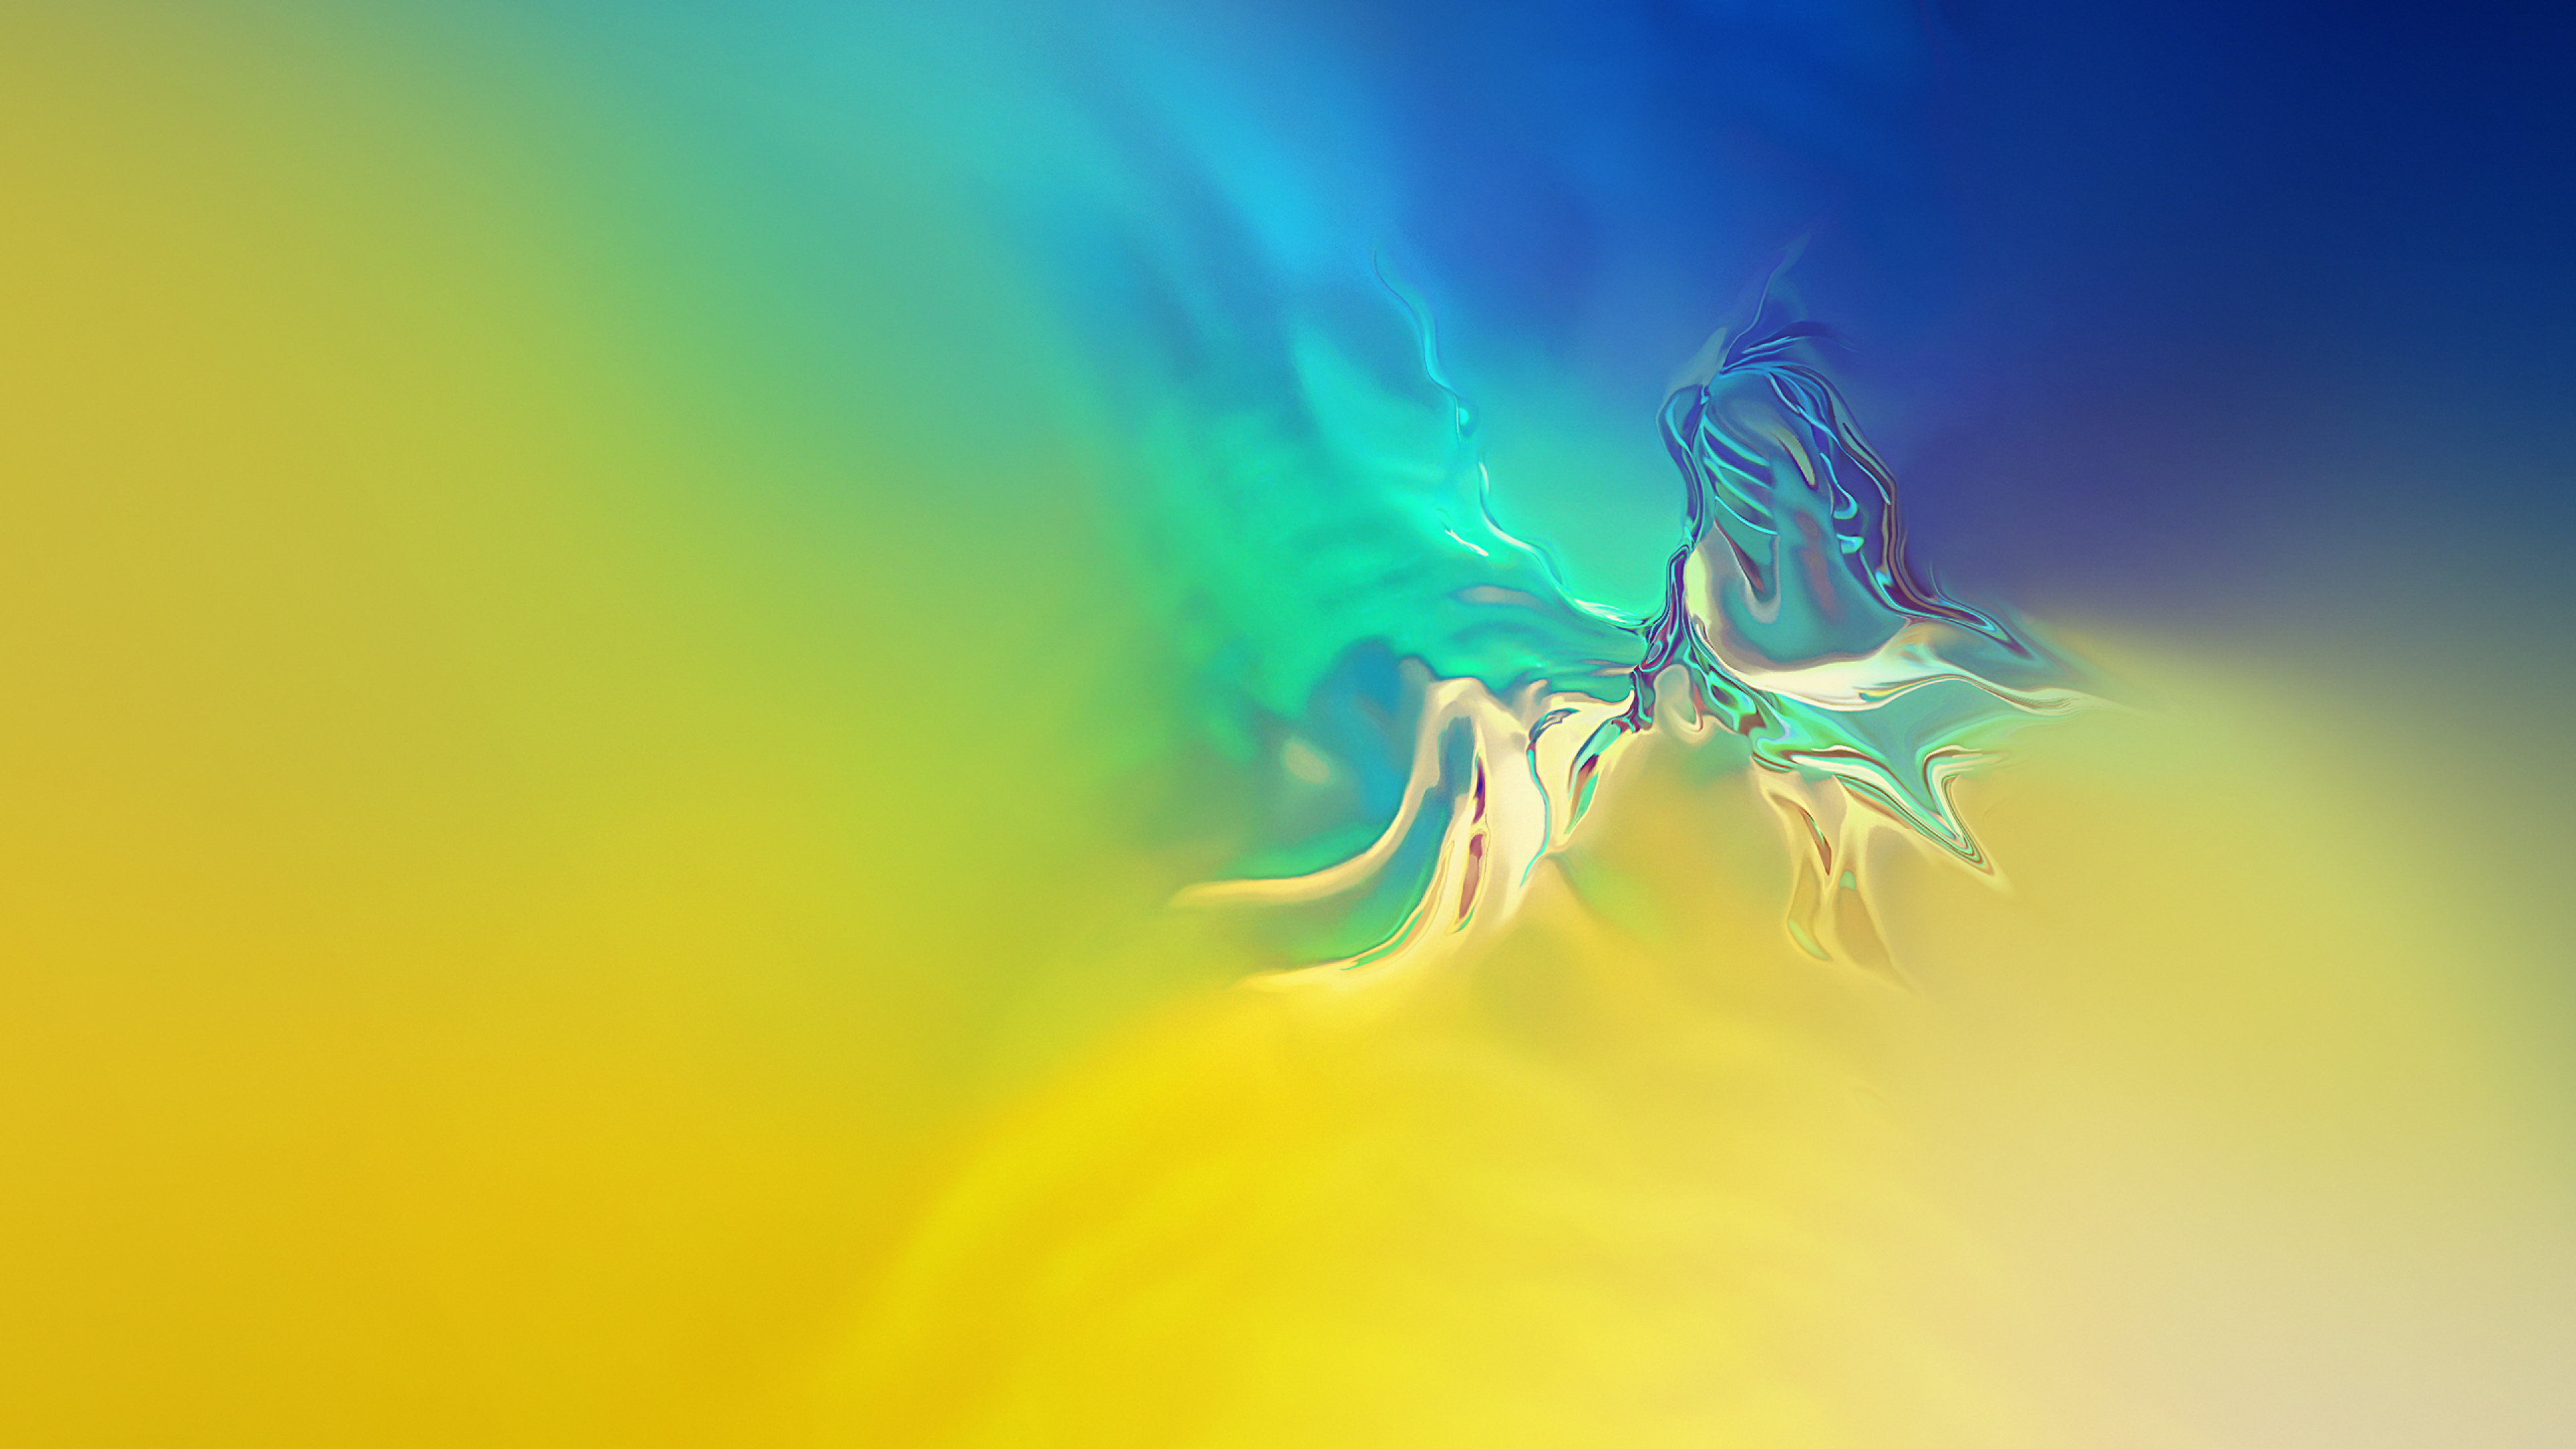 Samsung Laptop Wallpaper 4k 3840x2160 Download Hd Wallpaper Wallpapertip